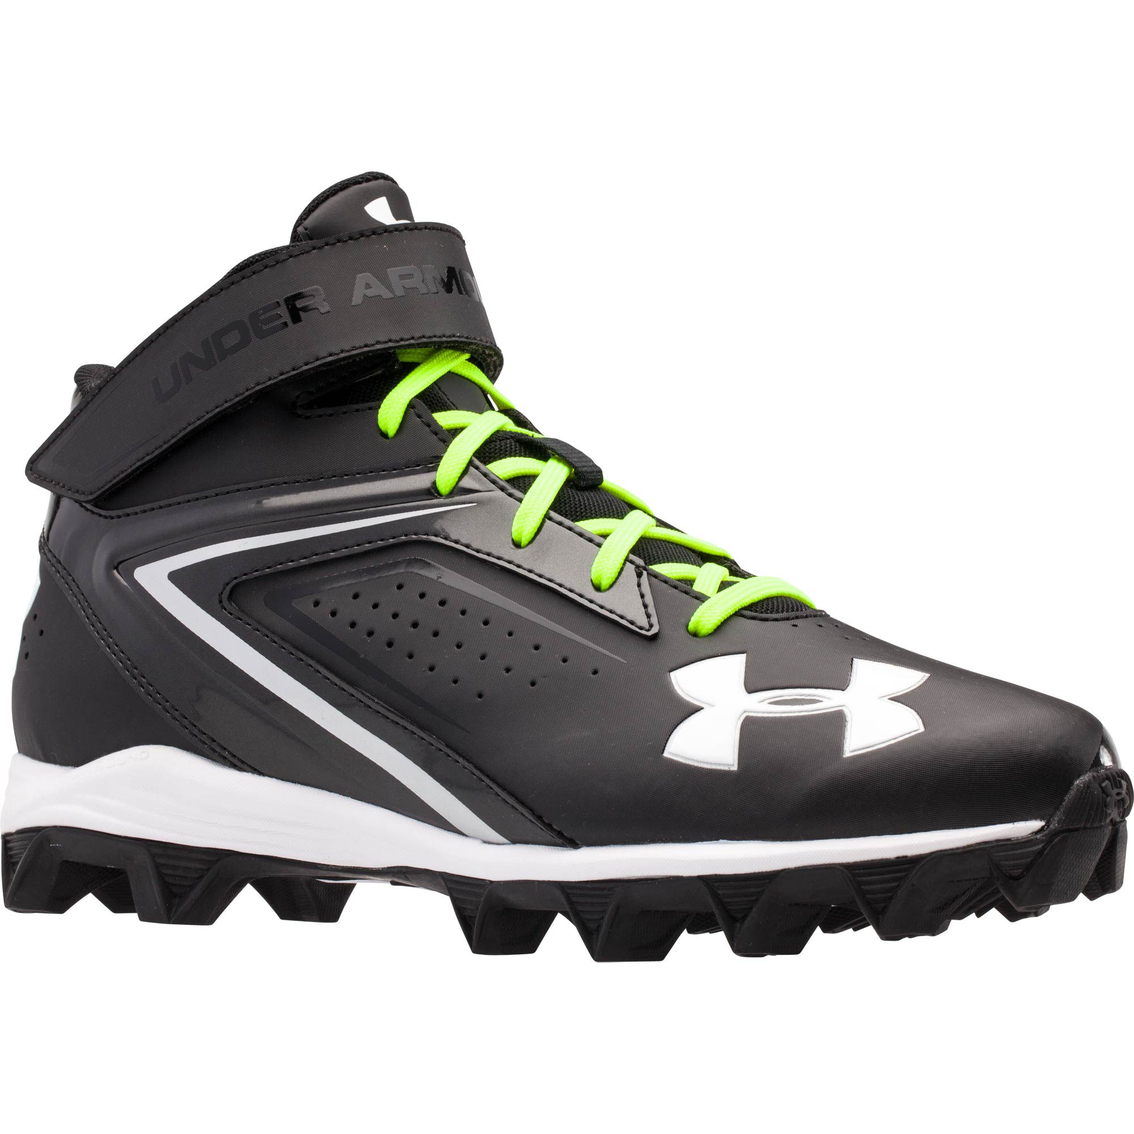 0b48f23f7a88 Under Armour Men's Crusher Rm Football Cleats | Football | Shoes ...